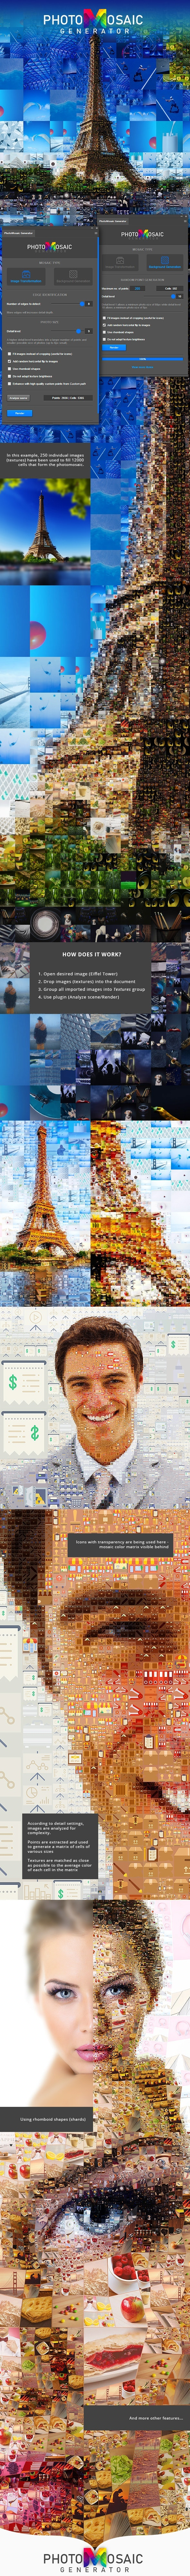 PhotoMosaic Generator - Photoshop Extension - Photo Effects Actions